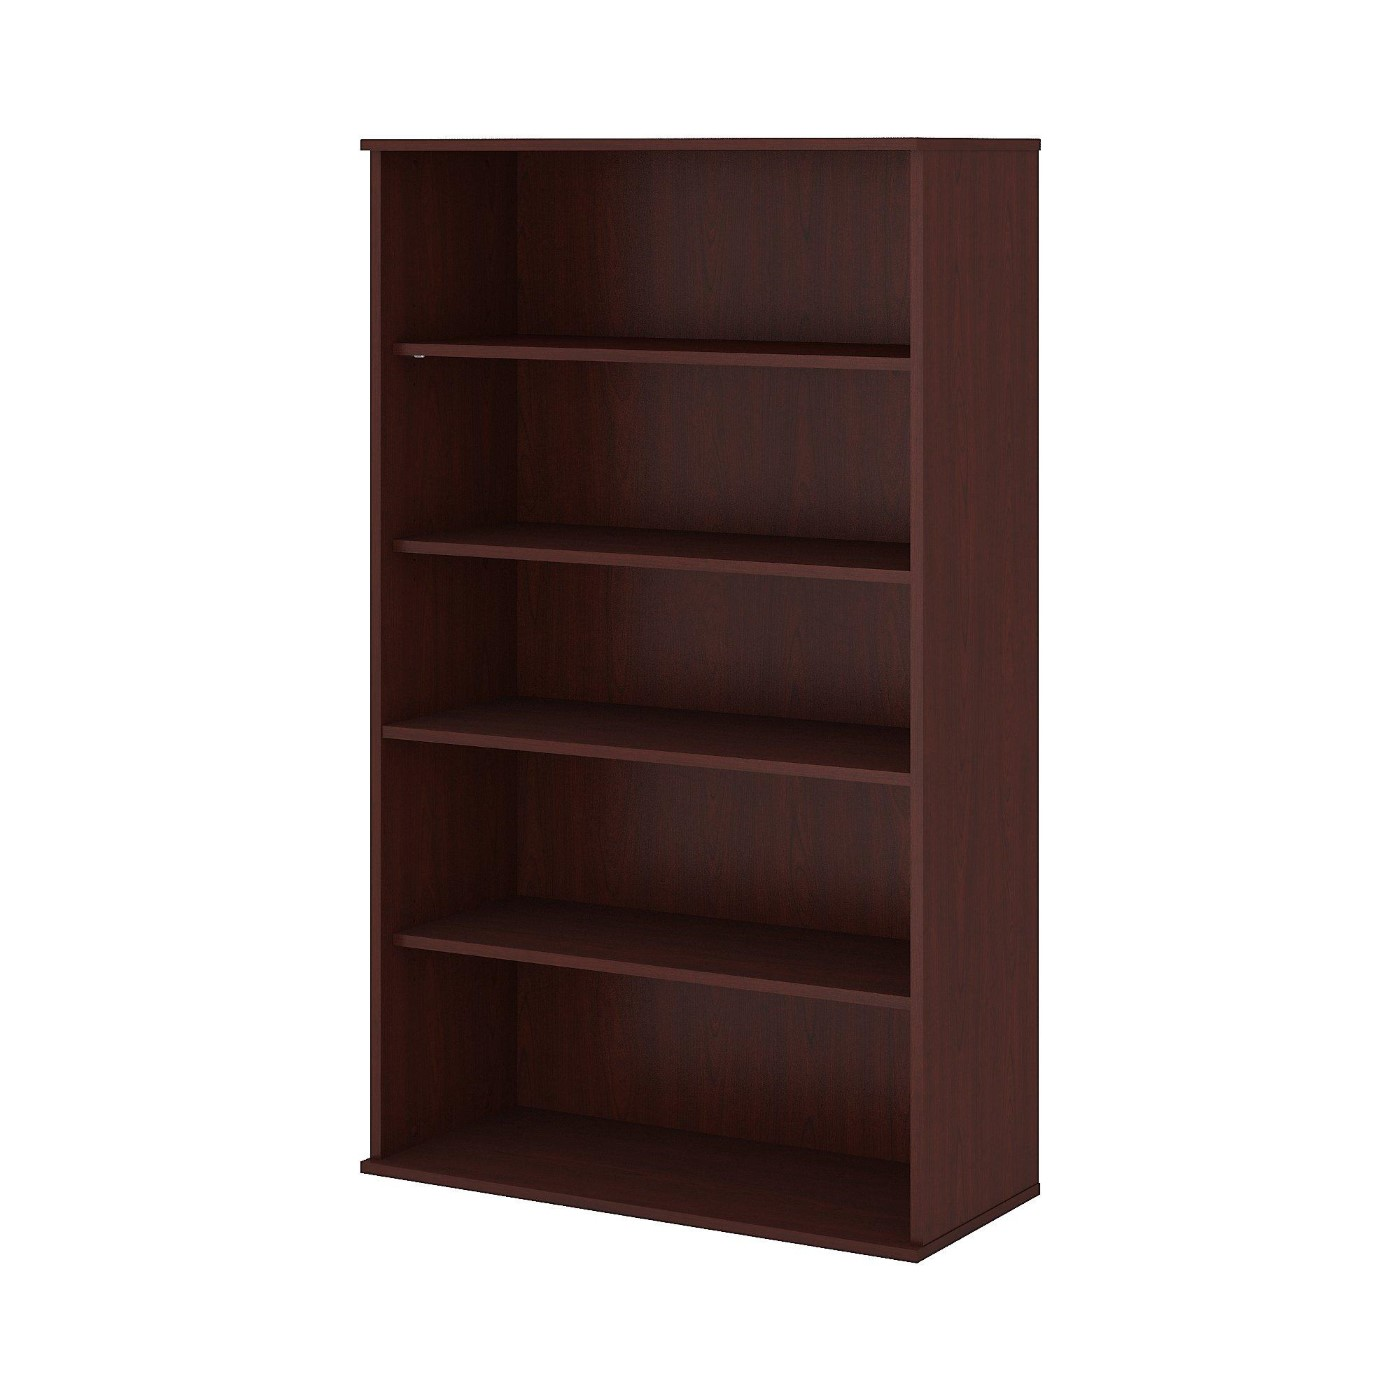 <font color=#c60><b>BUSH BUSINESS FURNITURE 66H 5 SHELF BOOKCASE. FREE SHIPPING</font></b></font></b>